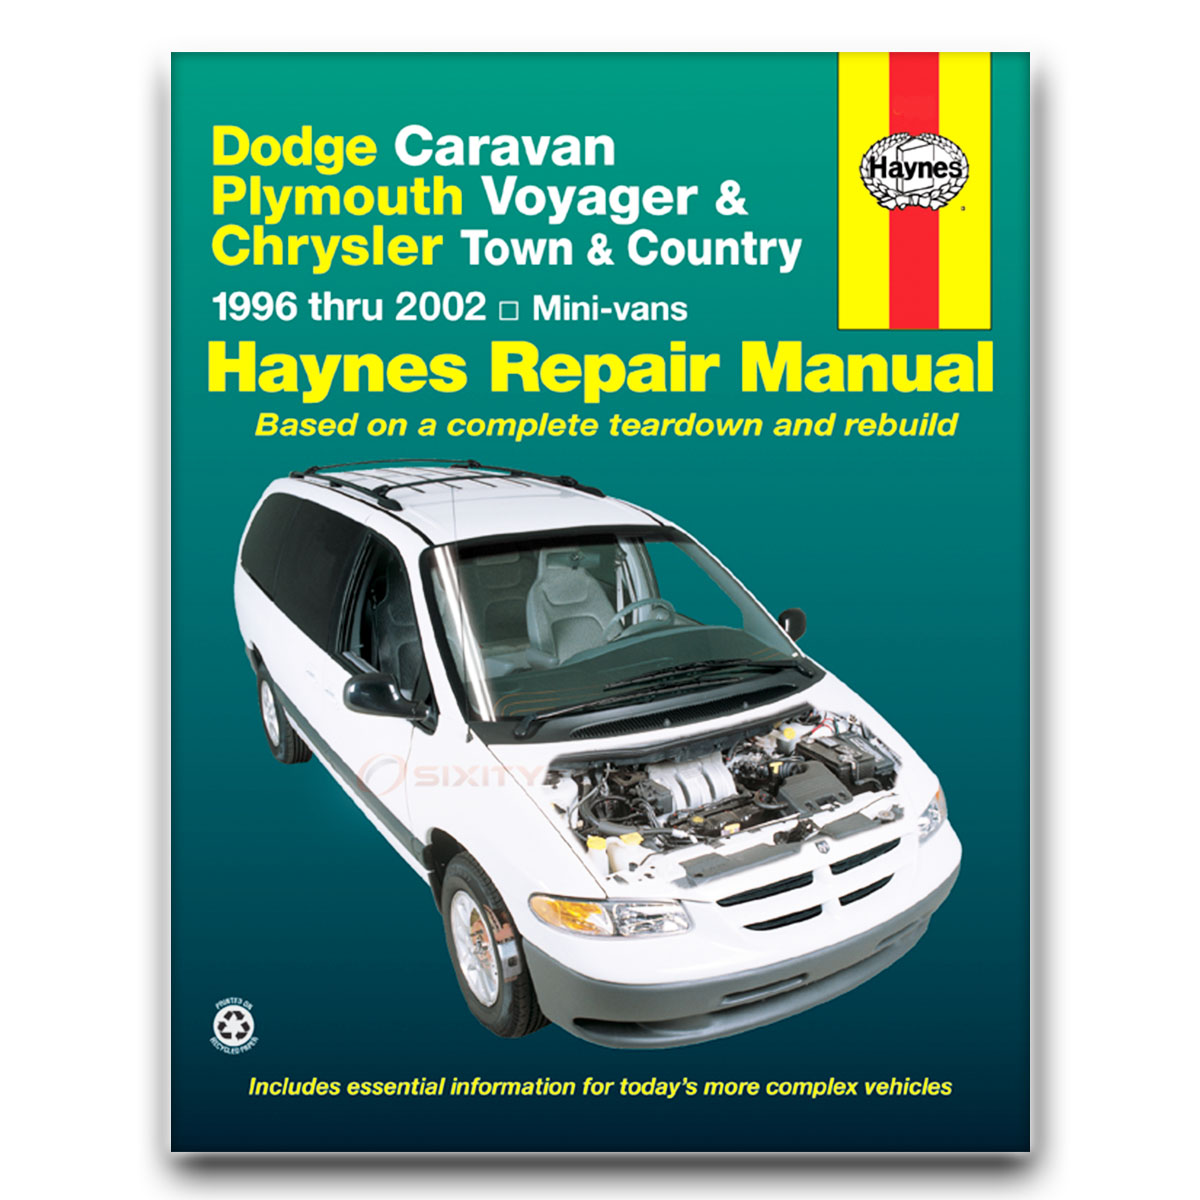 Haynes Repair Manual for Chrysler Voyager SE LX Base Shop Service Garage  Boo jh